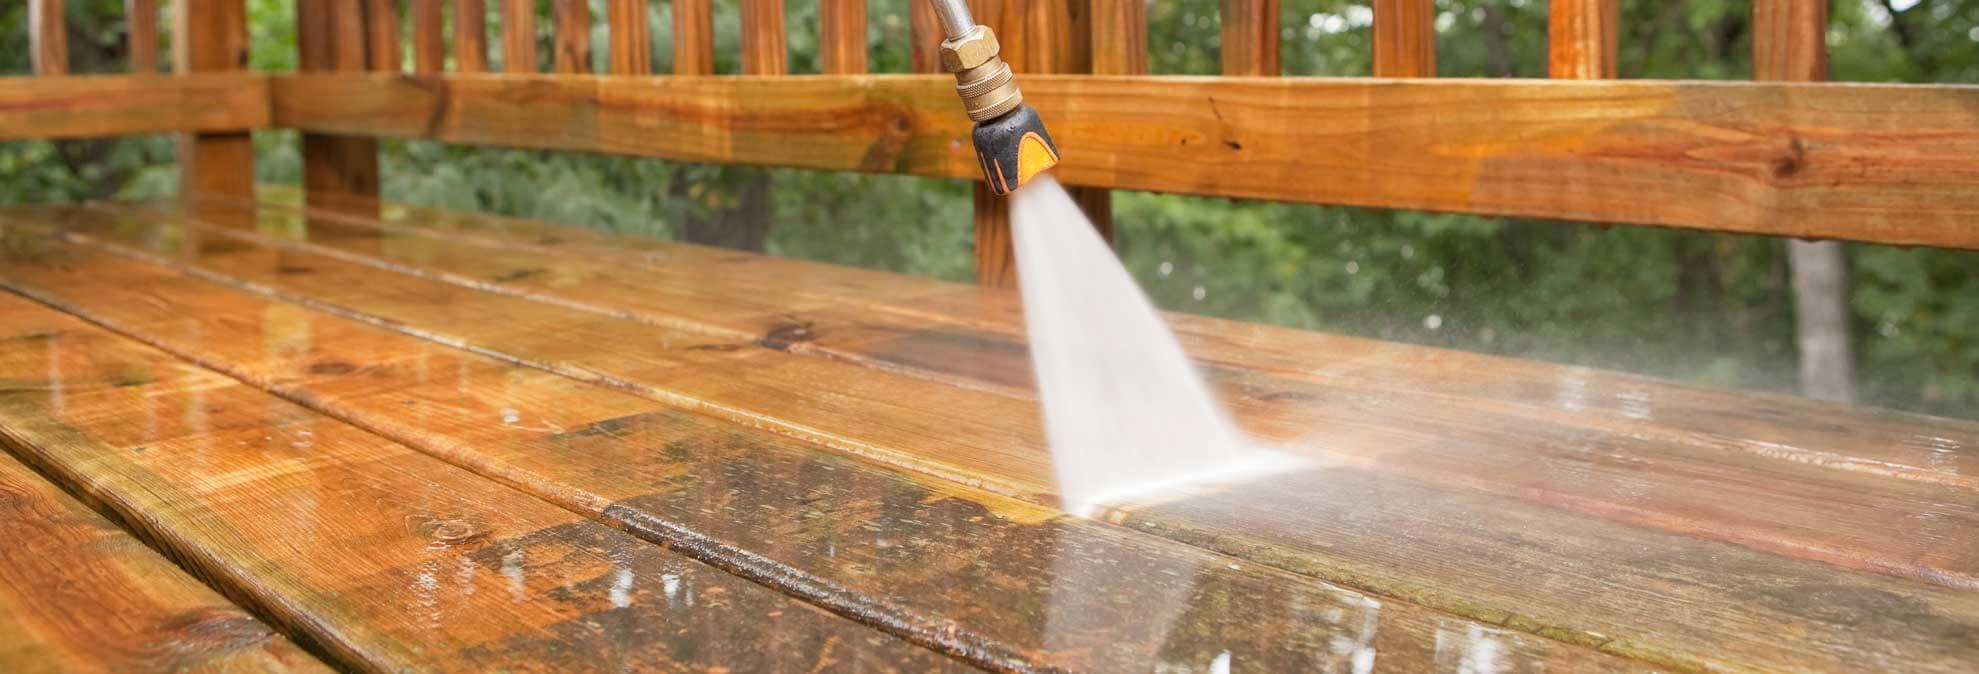 Which Surfaces Are Safe To Clean With A Pressure Washer